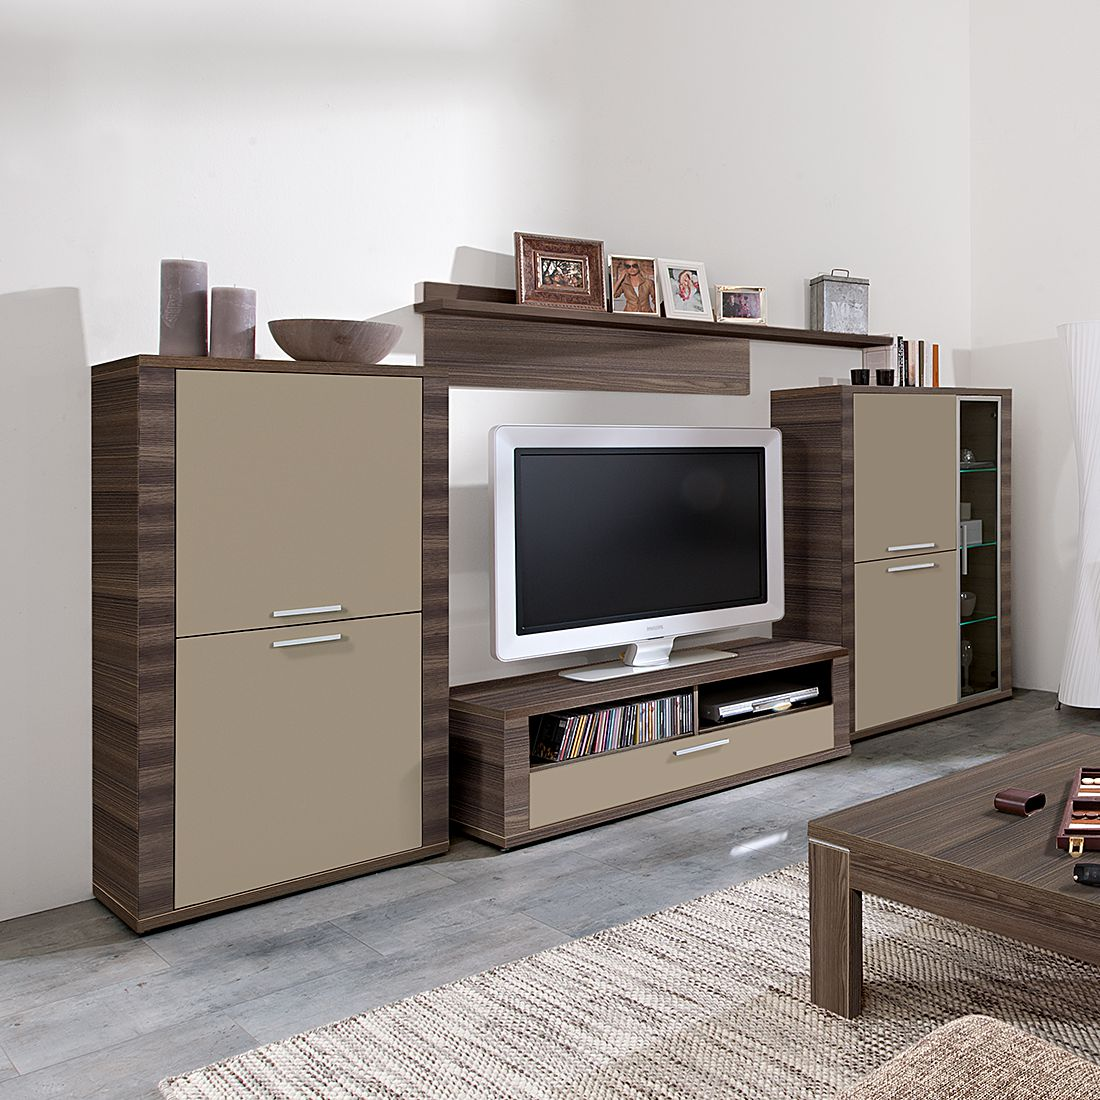 wohnwand cool 4 teilig 326cm breit eiche dunkel. Black Bedroom Furniture Sets. Home Design Ideas